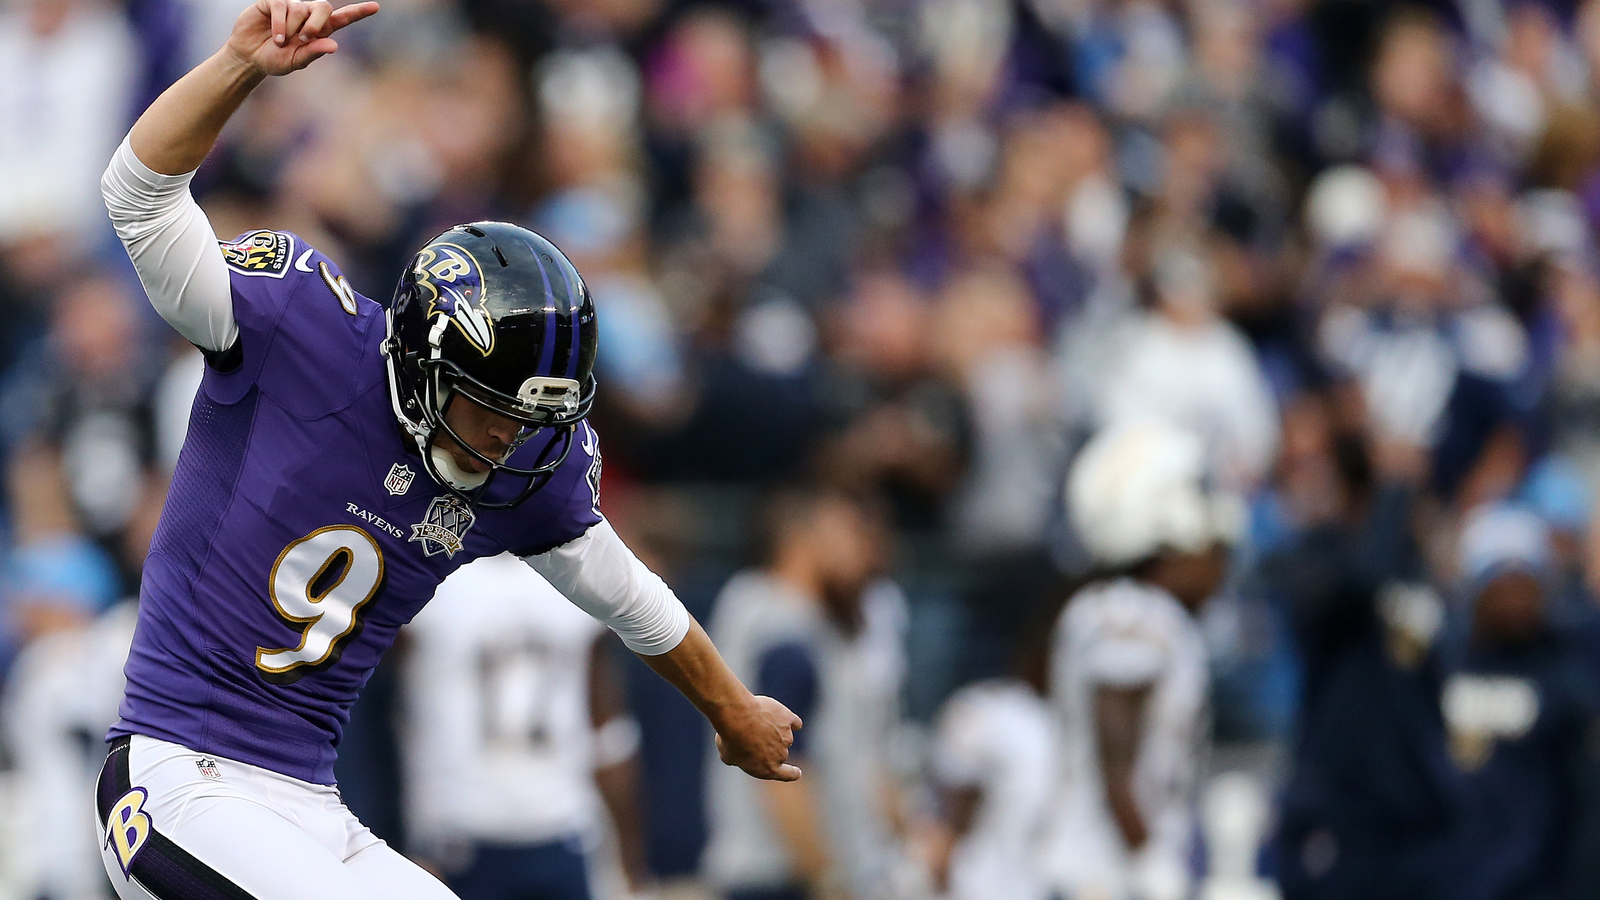 Ravens haven't abandoned hope of reaching playoffs